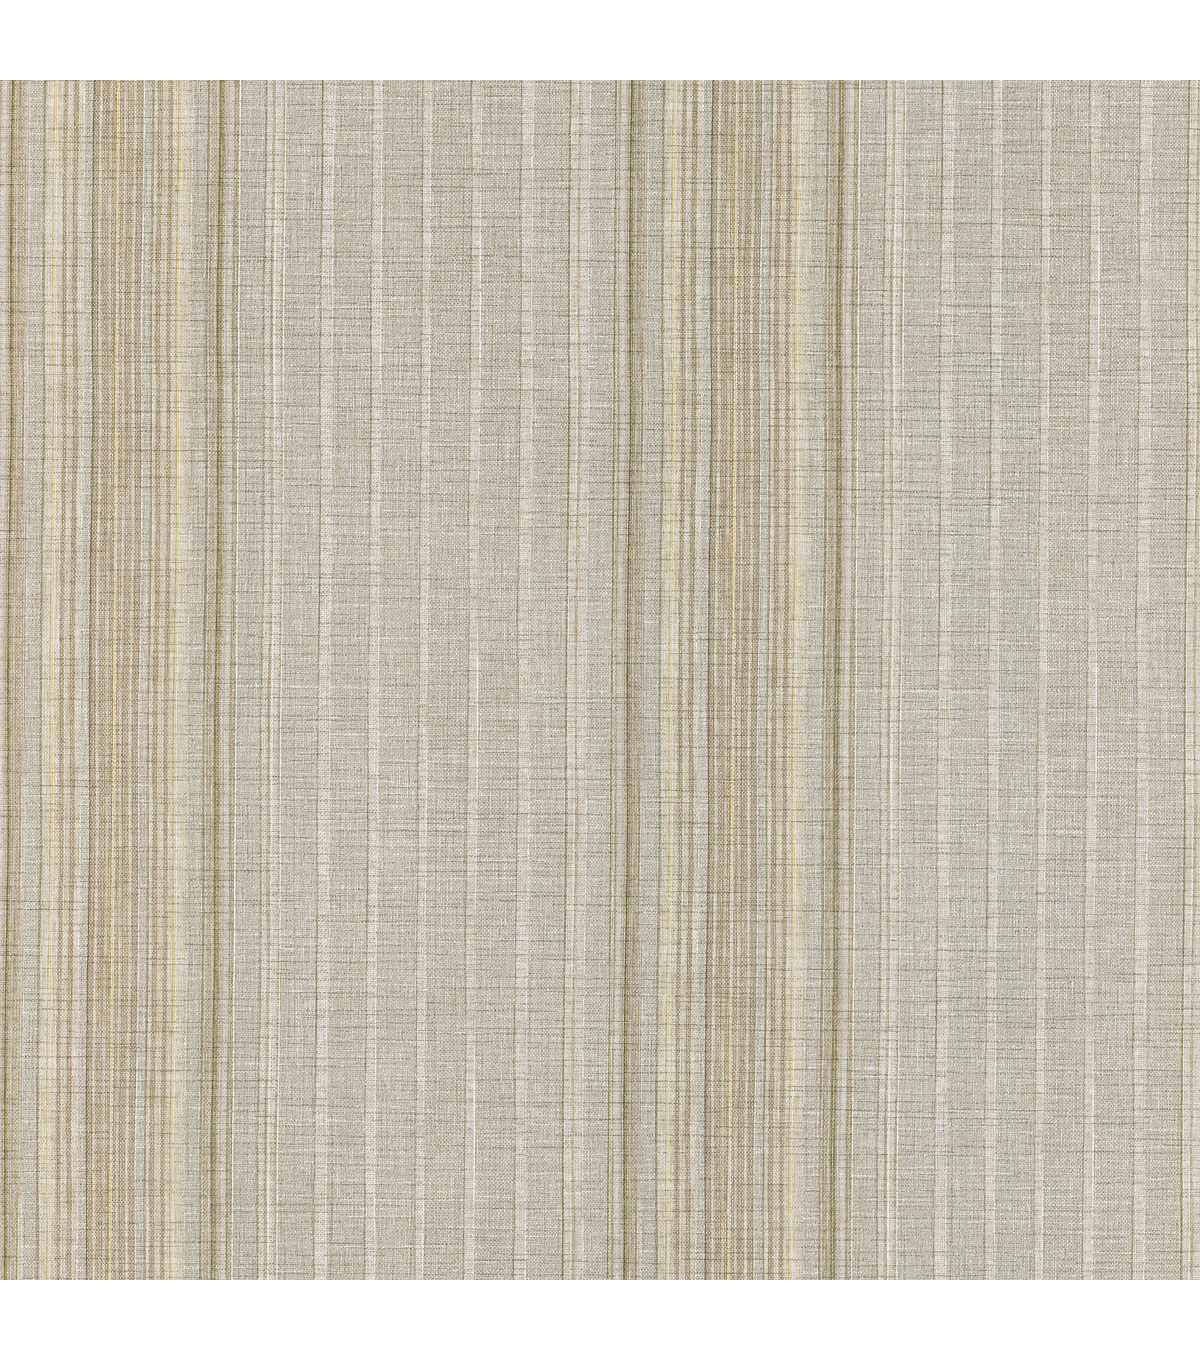 Natuche Grey Linen Stripe Wallpaper